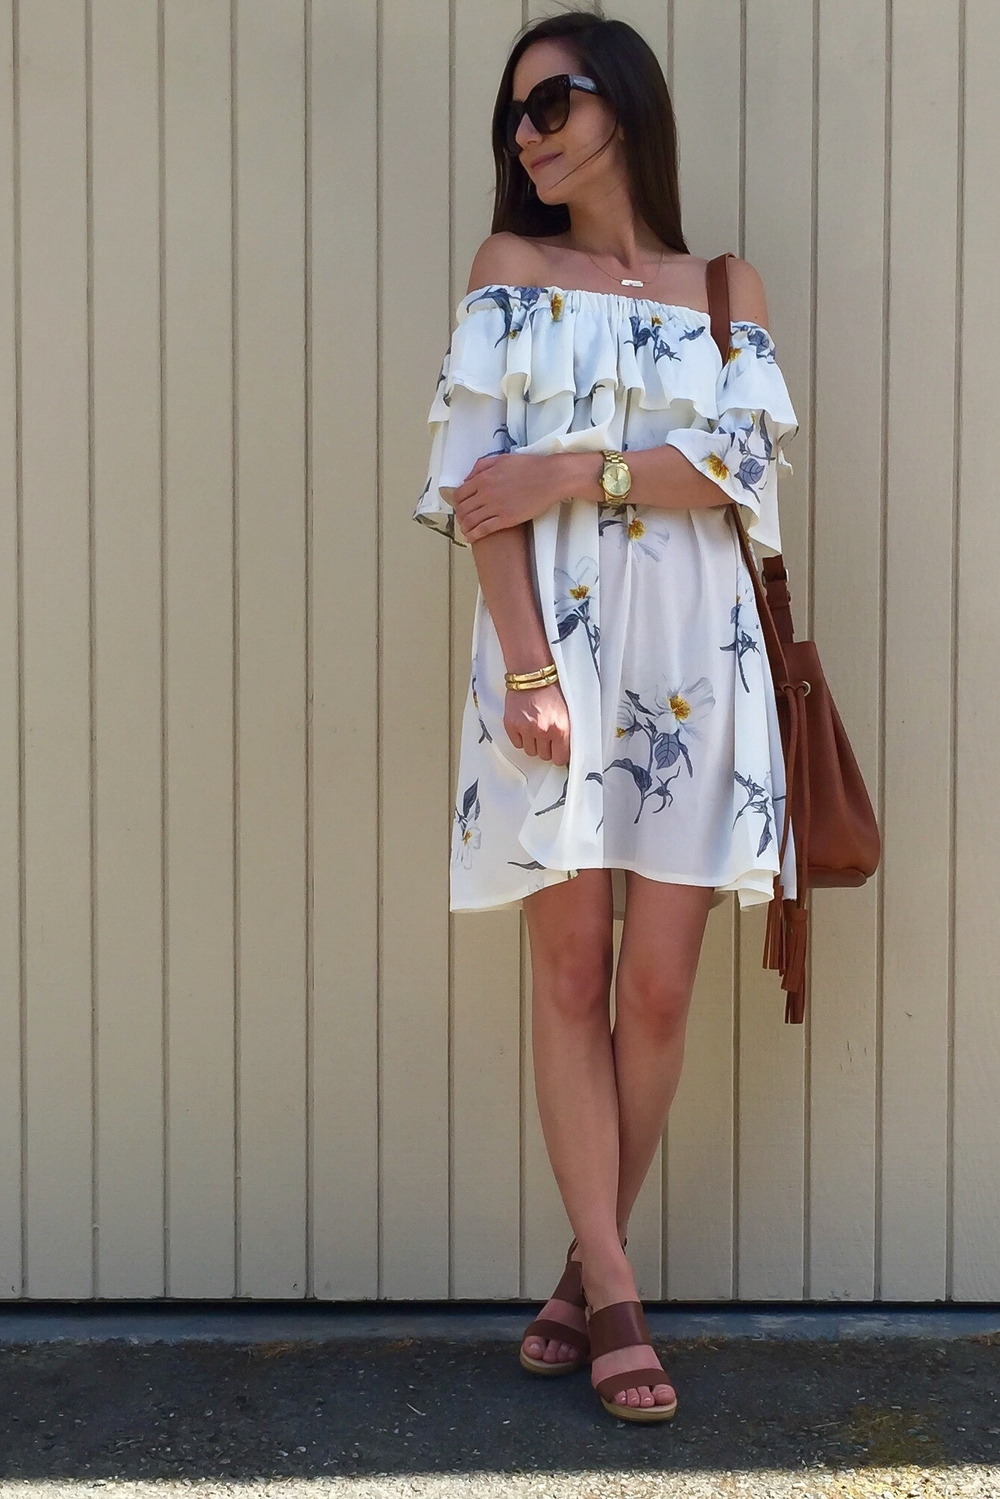 Shop the Look Below. Dress: Chicwish c/o. Shoes: Old Navy. Bag: Street Level via Stitch Fix. (see similar below) Necklace: Taudrey c/o. Watch: Michael Kors. Sunglasses: Lola Accessory Boutique c/o.